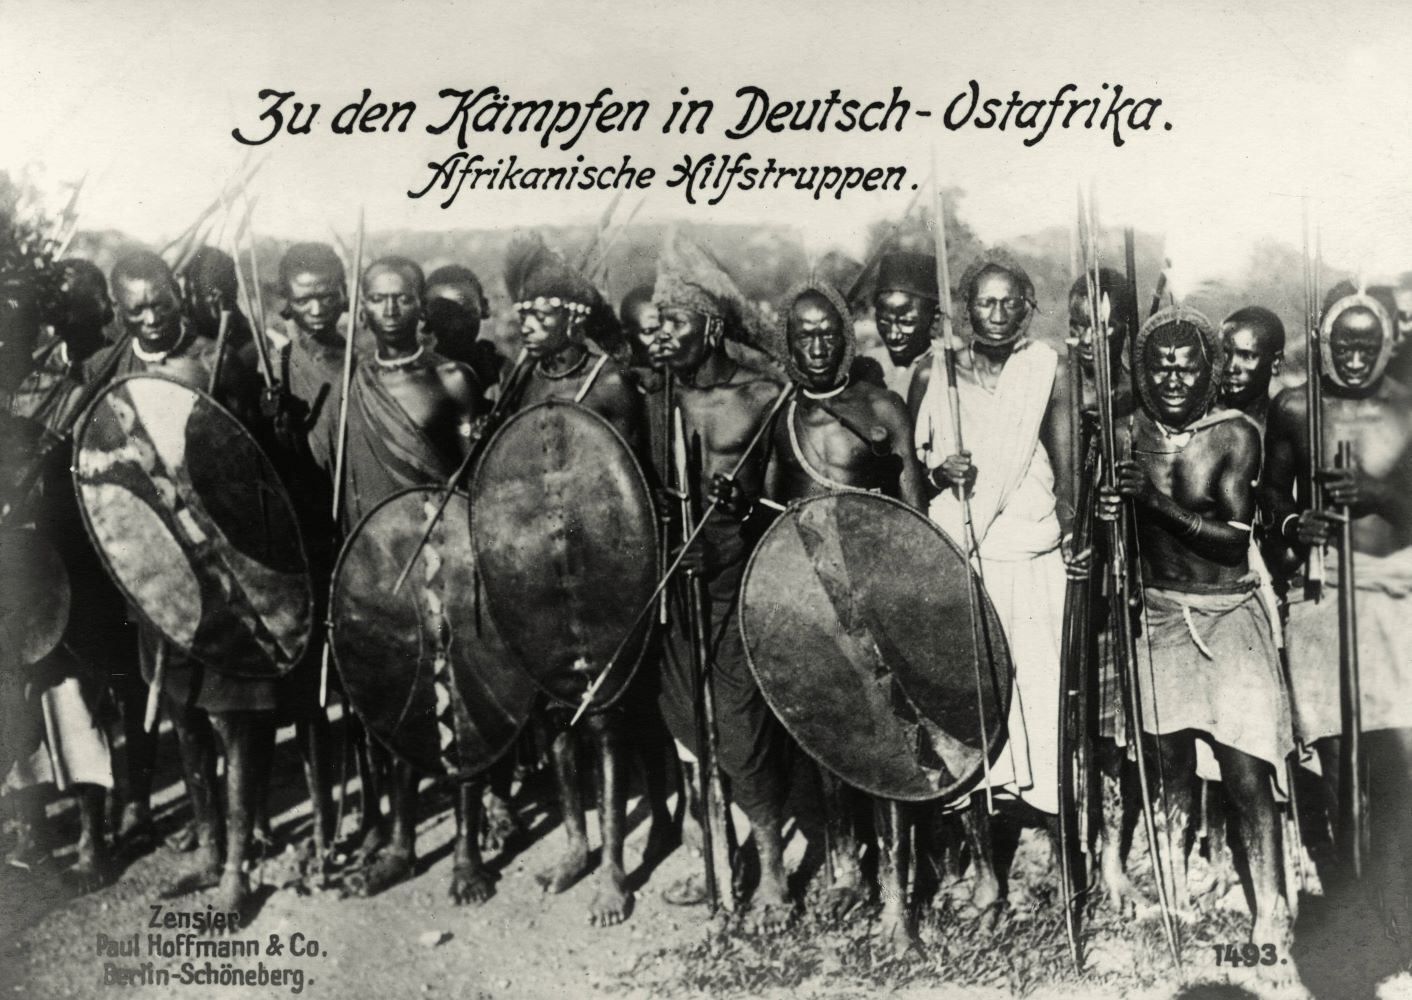 African auxiliary troops from Deutsch-Ostafrika (Tanzania). Photo, around 1915.